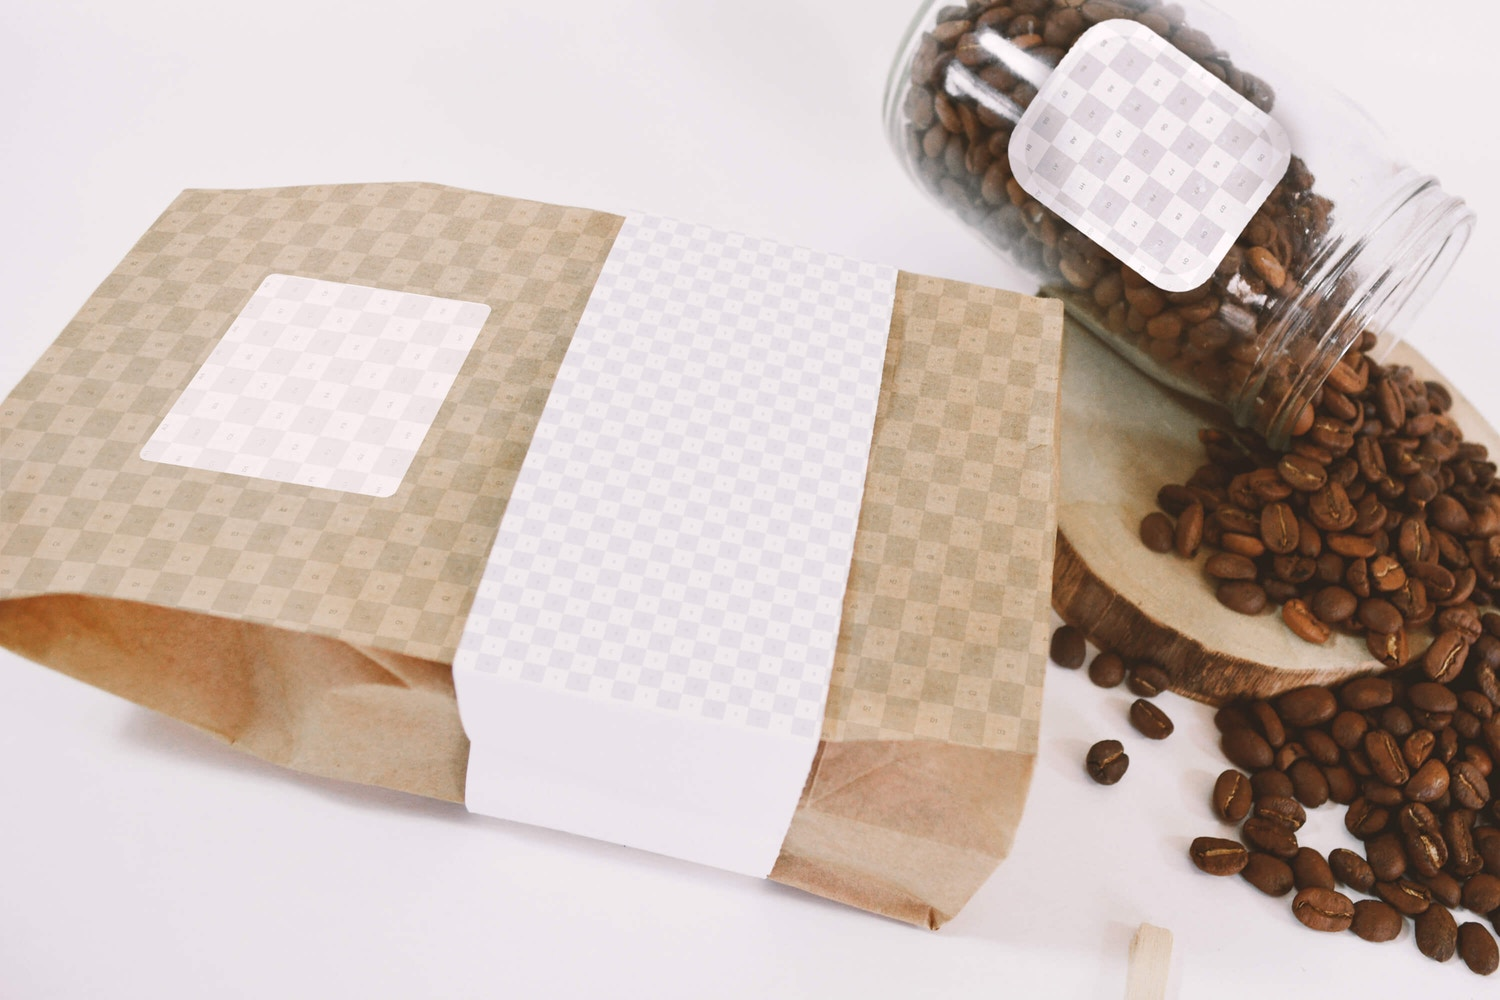 Coffee Bag and Glass Jar Mockup - Perspective Top View (2) by Eduardo Mejia on Original Mockups